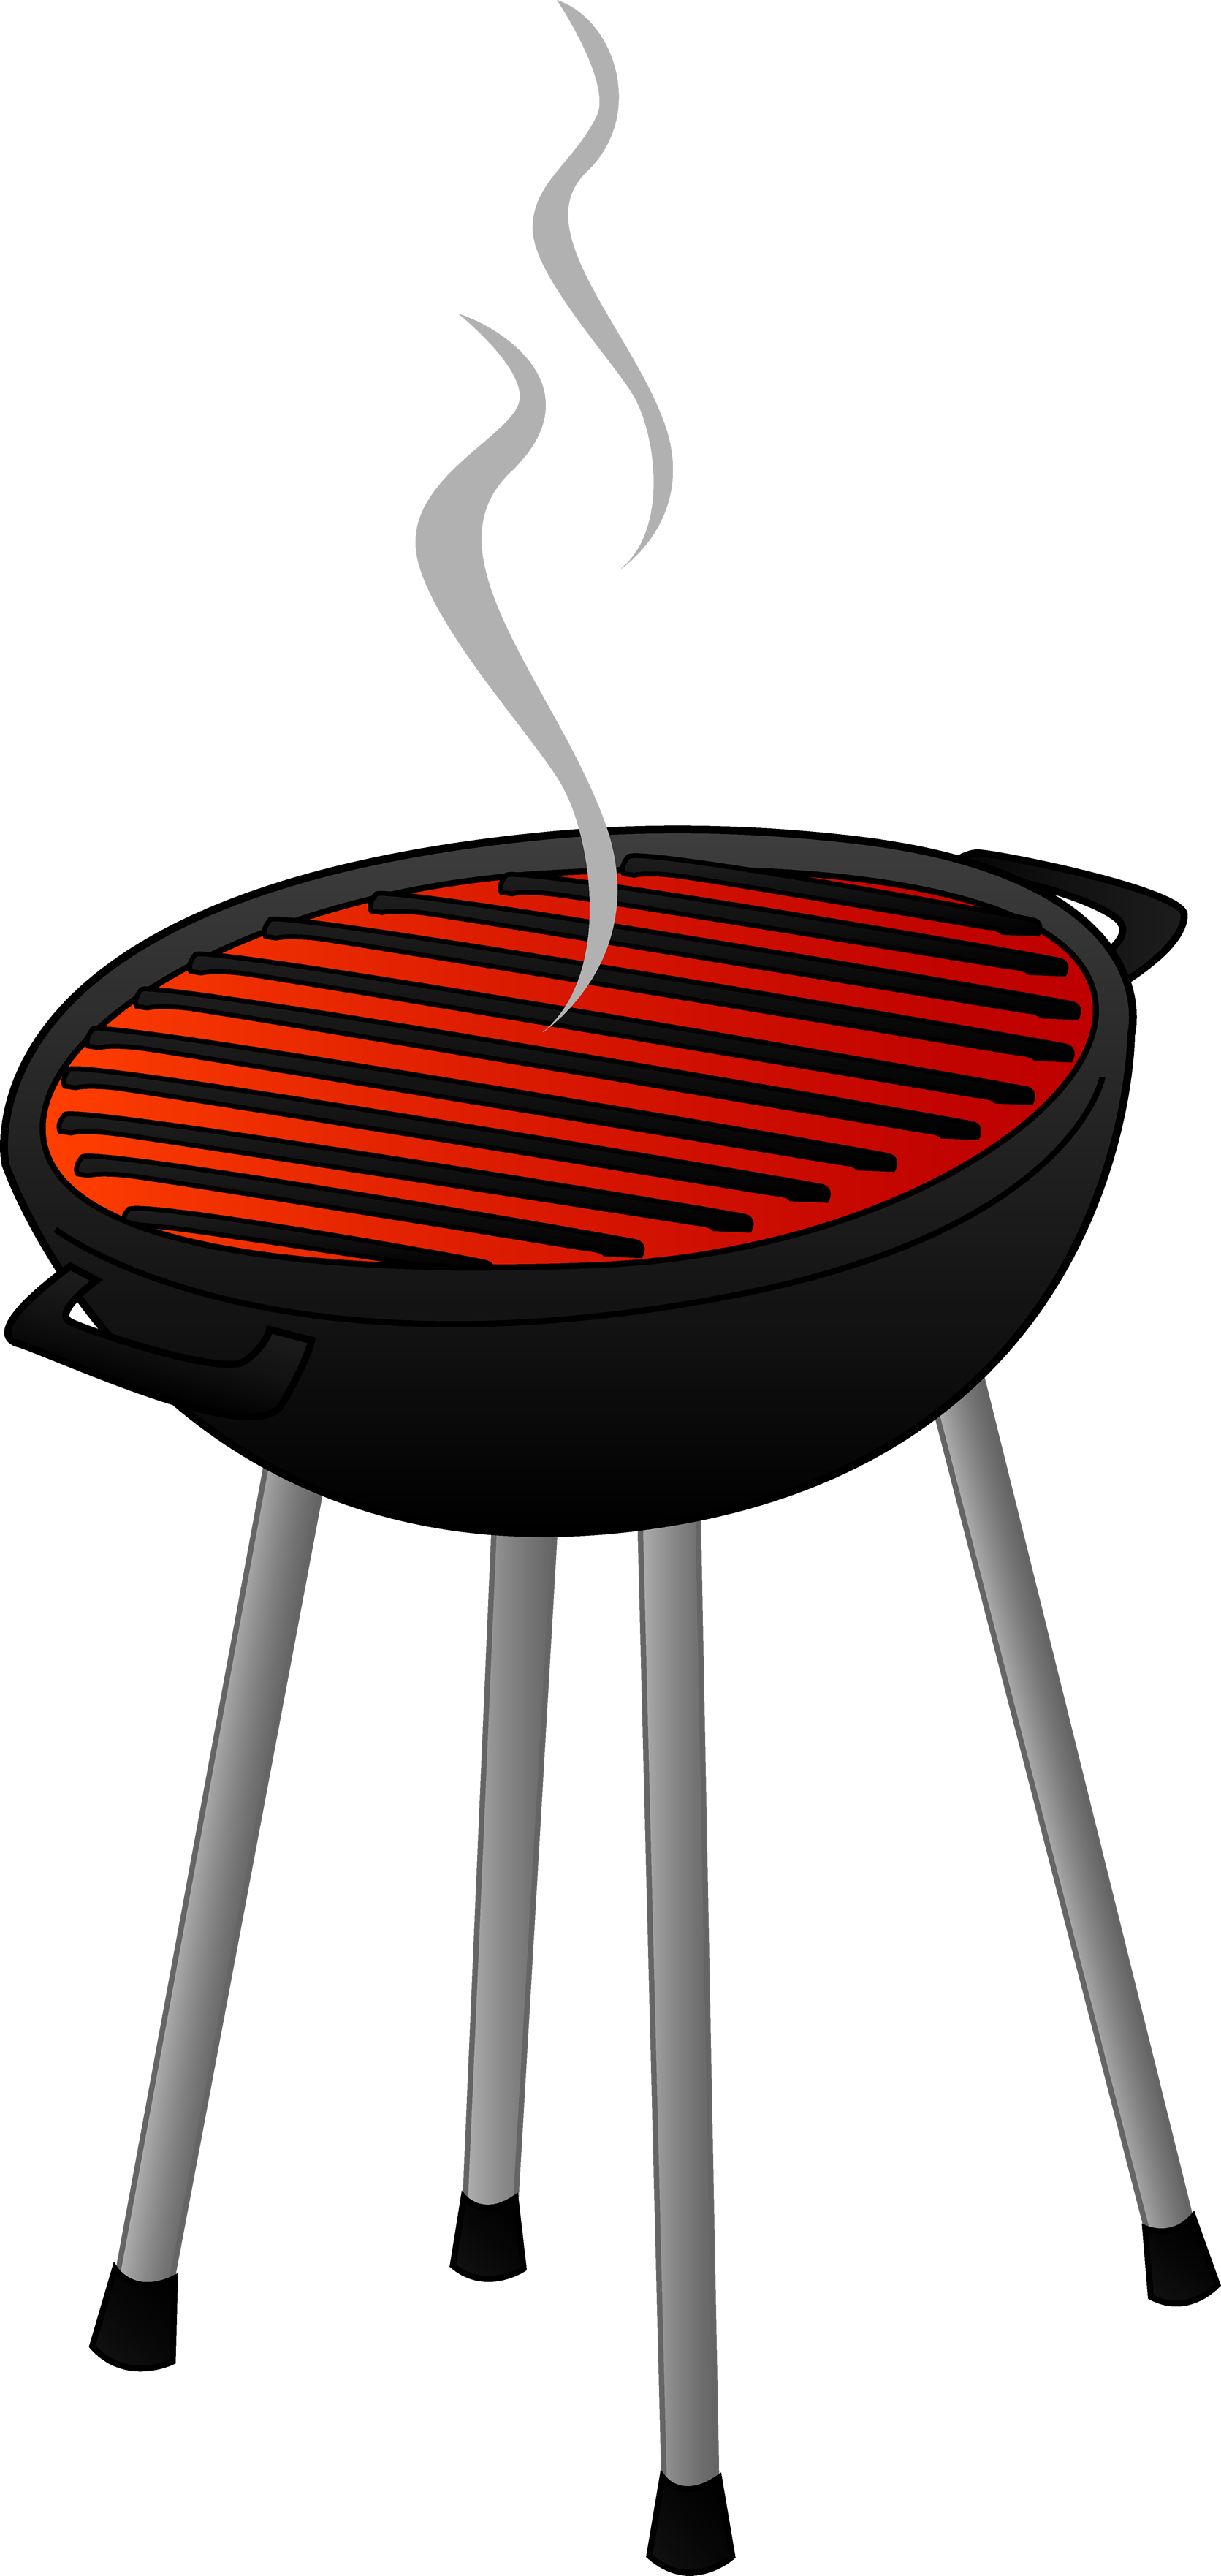 Free Bbq Grill Clipart Png, Download Free Clip Art, Free.